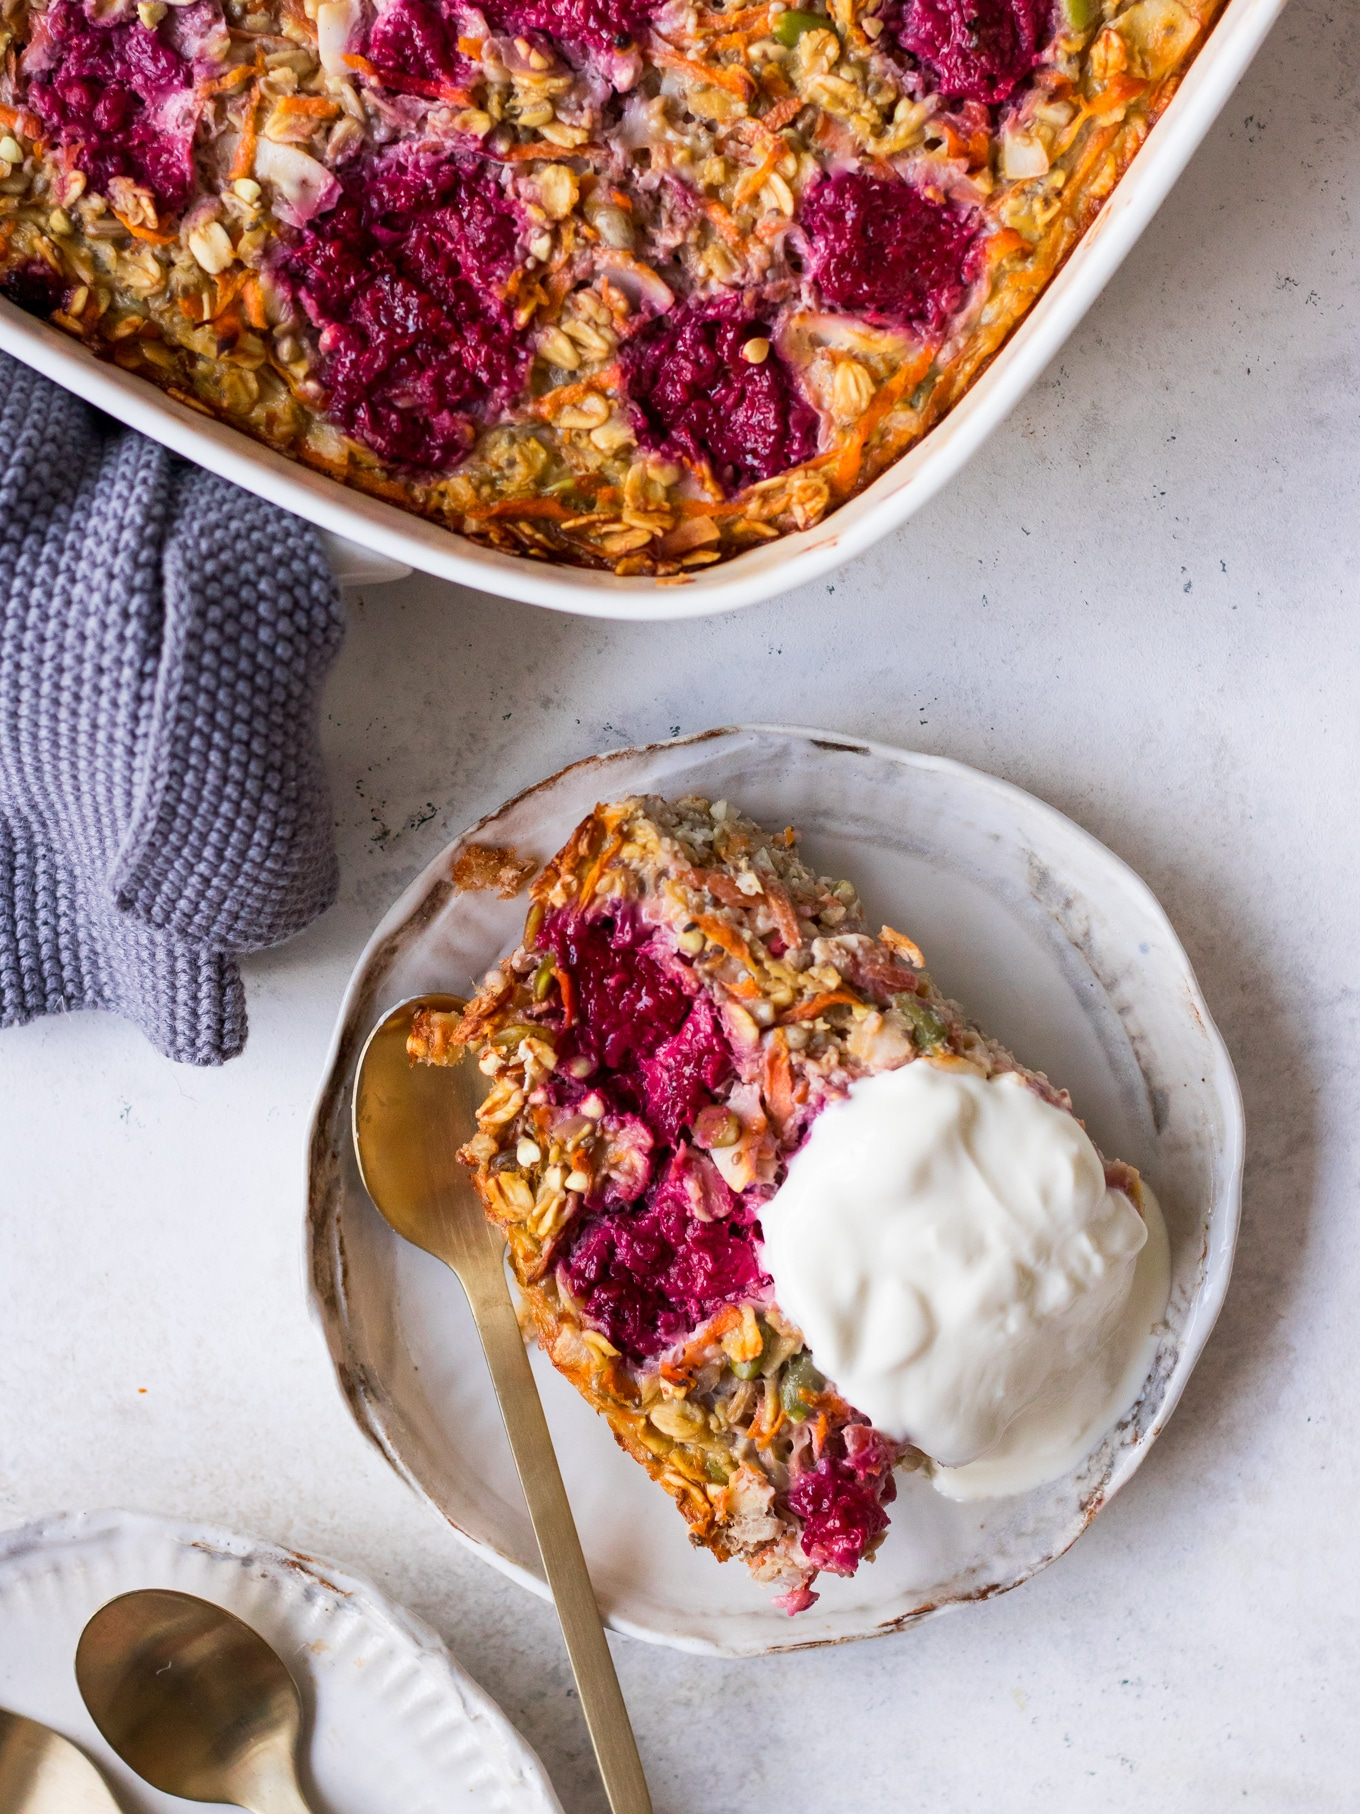 Carrot and Raspberry Baked Oats